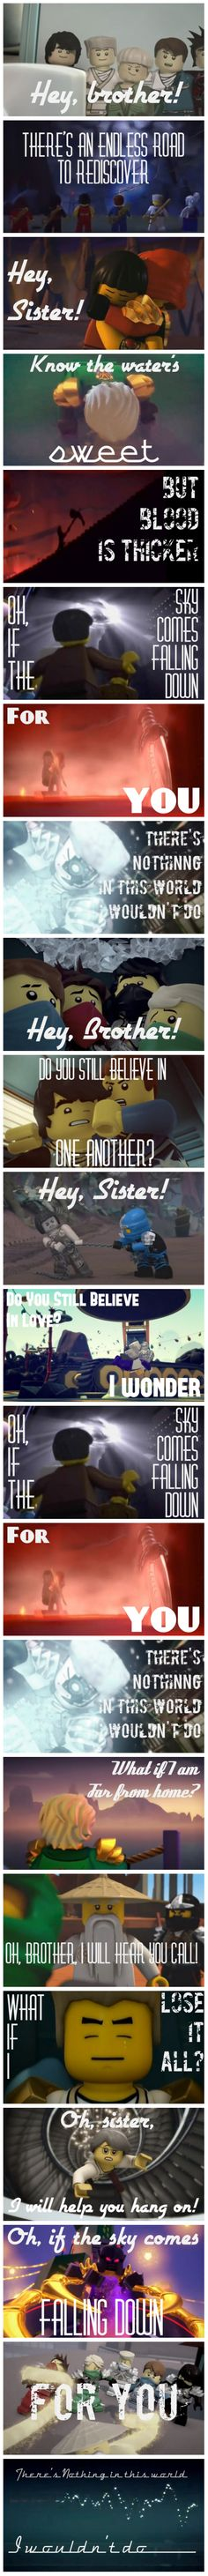 Ninjago- Hey Brother by Neon-Frost.deviantart.com on @DeviantArt someone please make a music video!!!